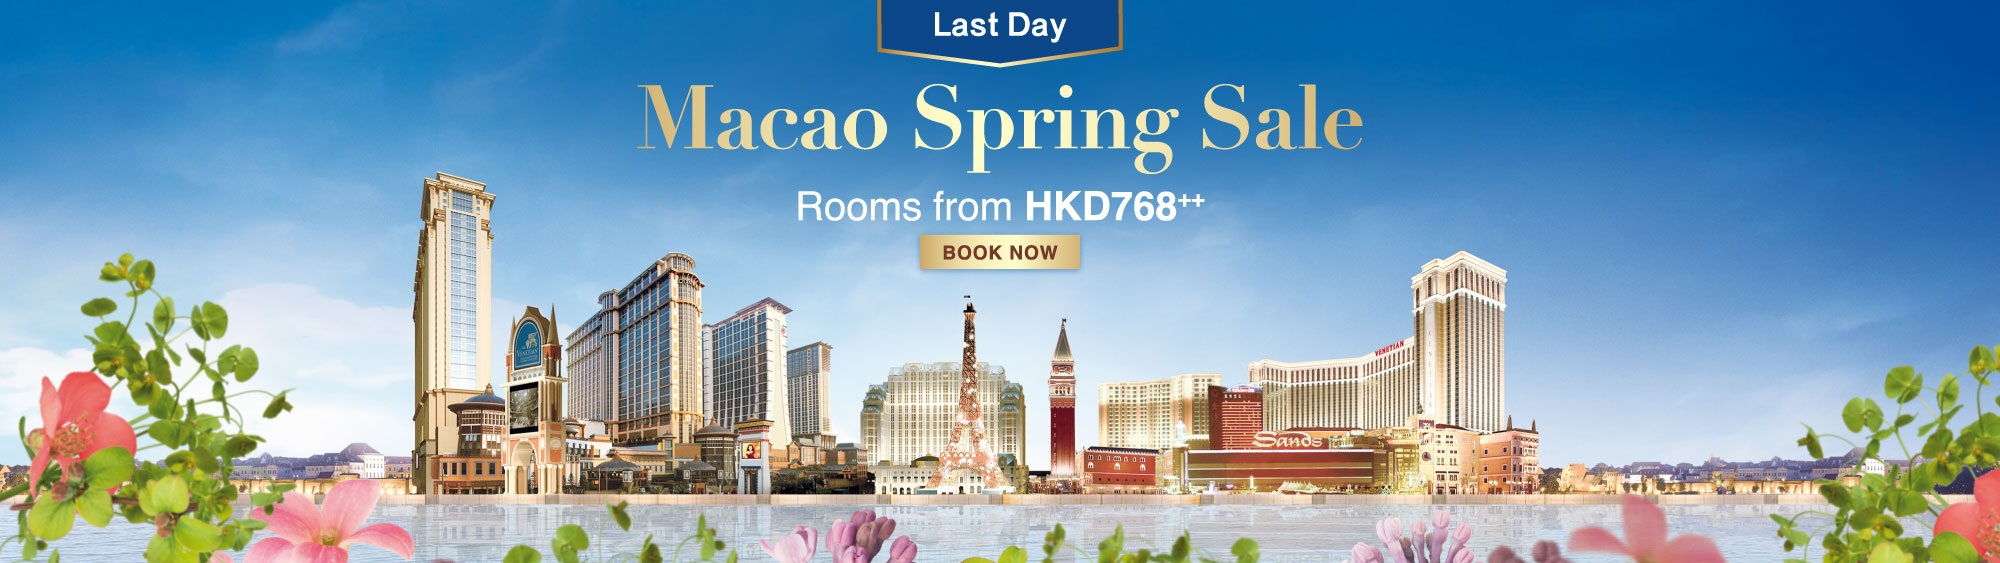 Macao Spring Sale 2018